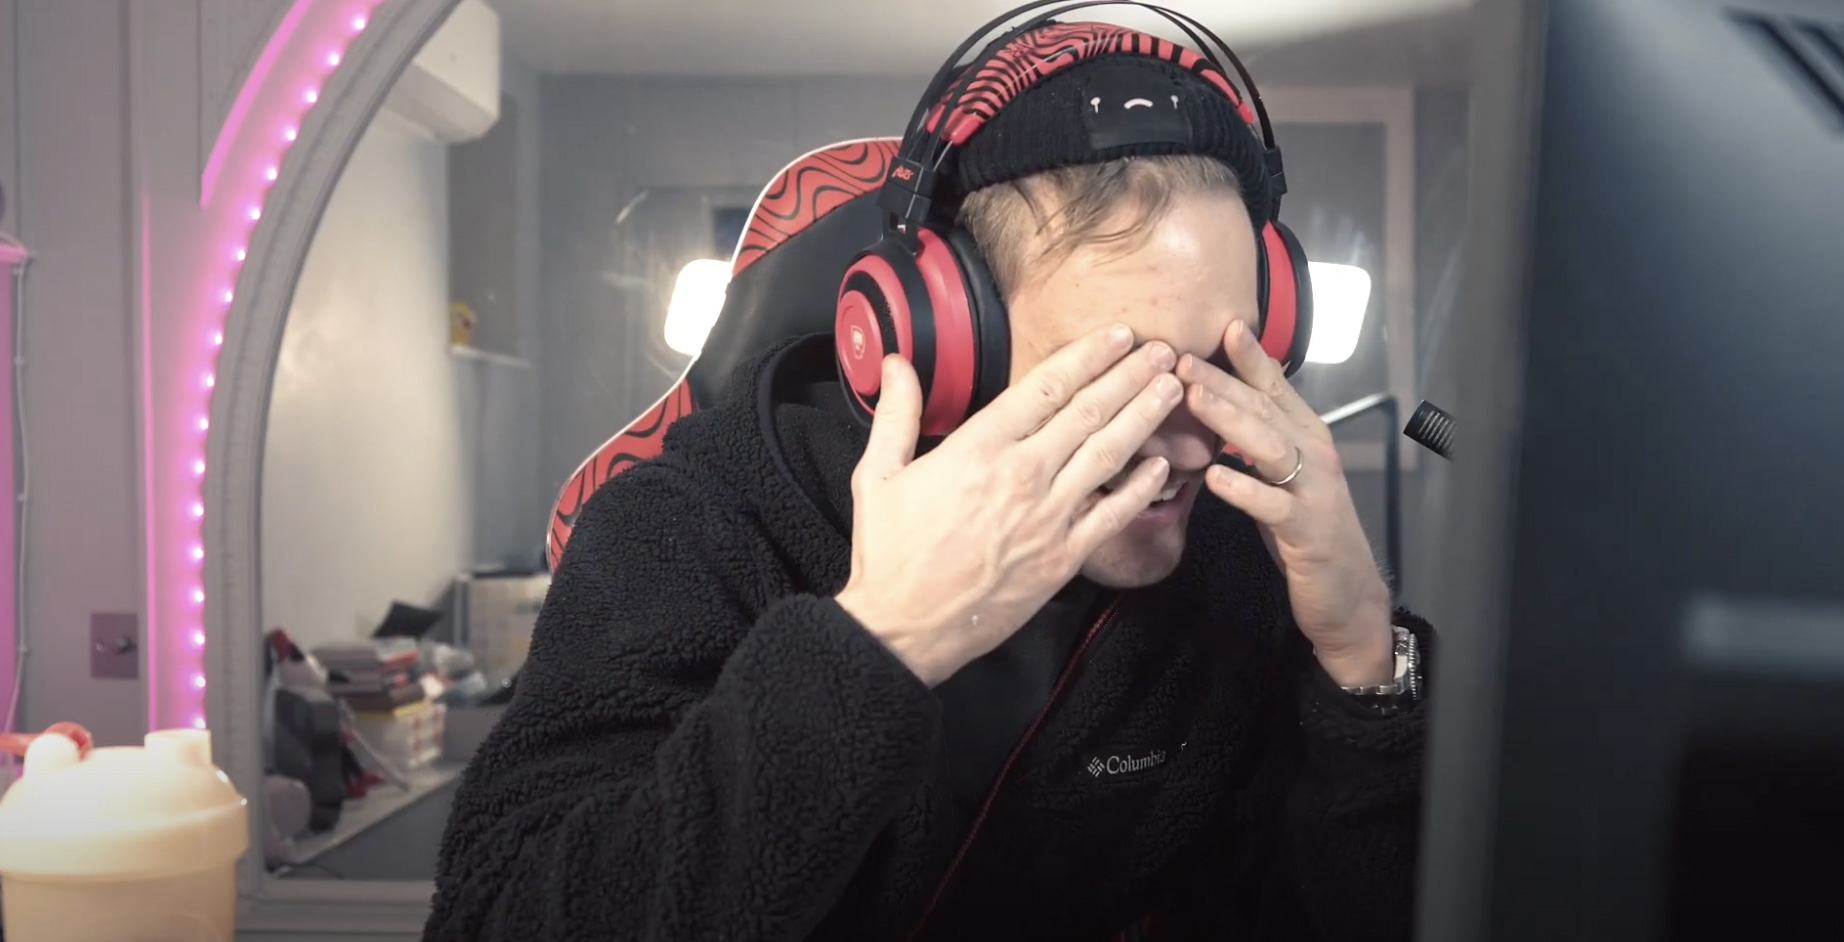 YouTuber PewDiePie with his hands over his face.